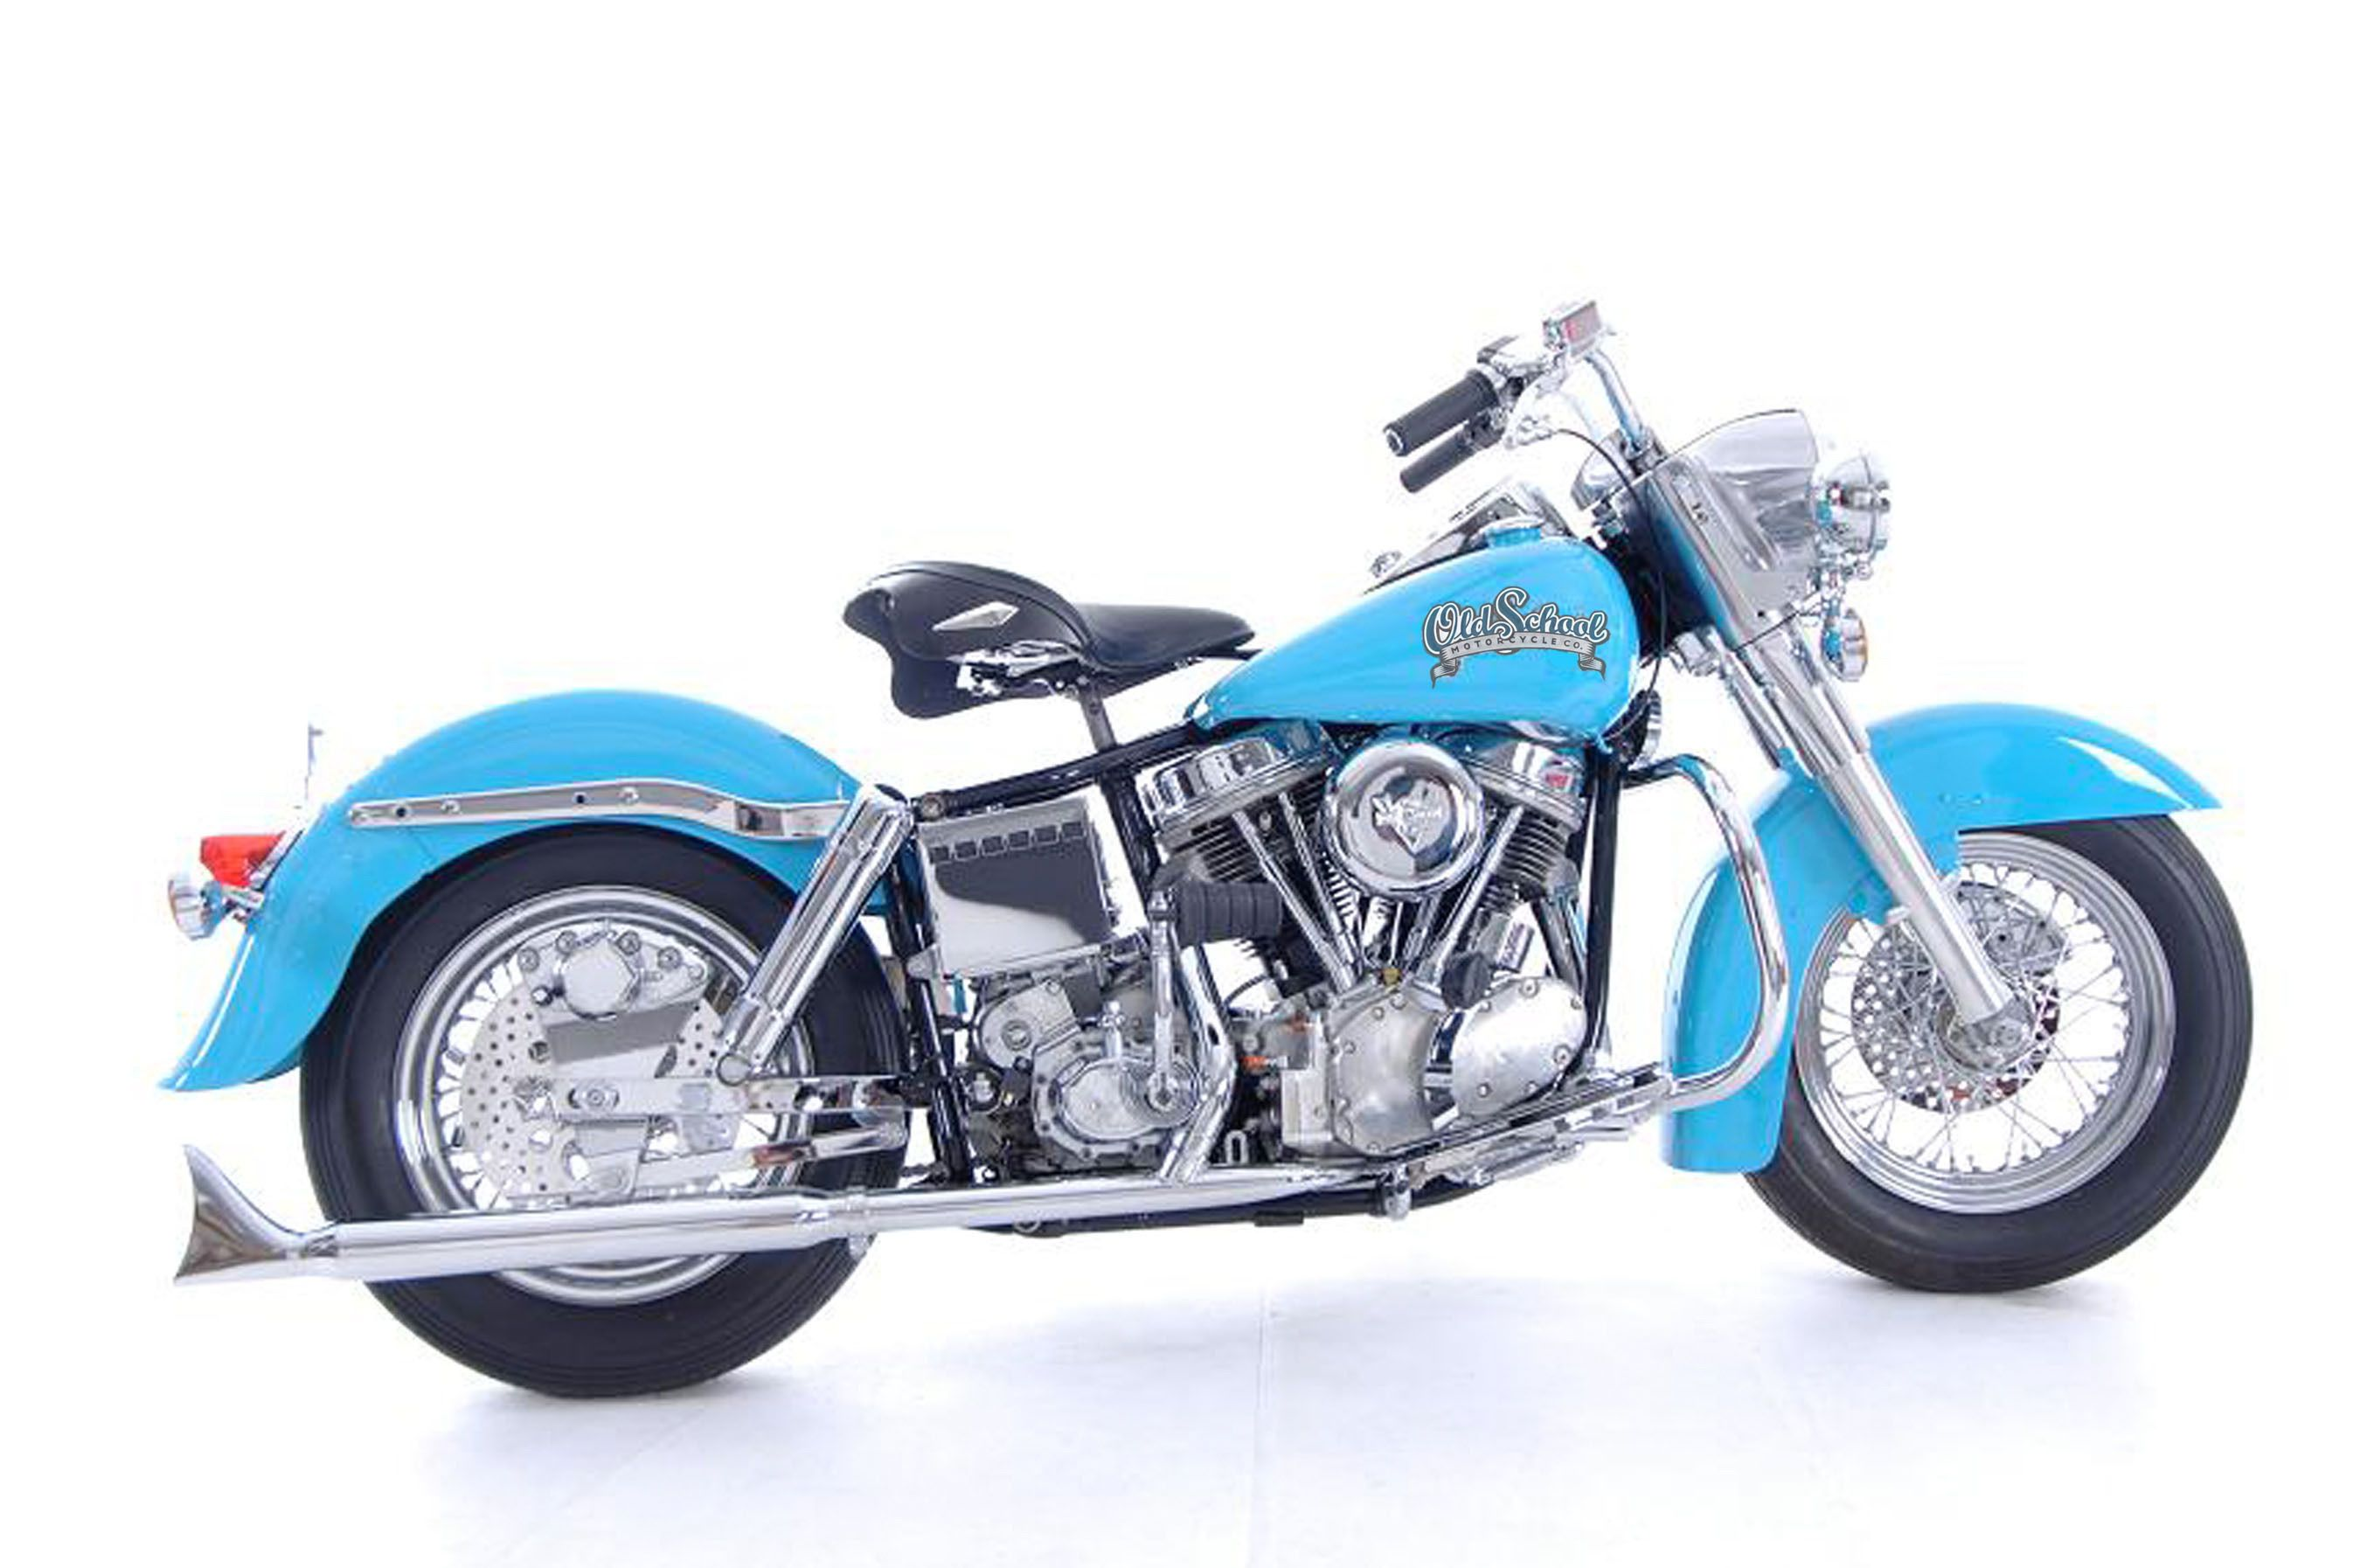 Time Traveller Deluxe Classic Motorcycles Motorcycle Old School Motorcycles